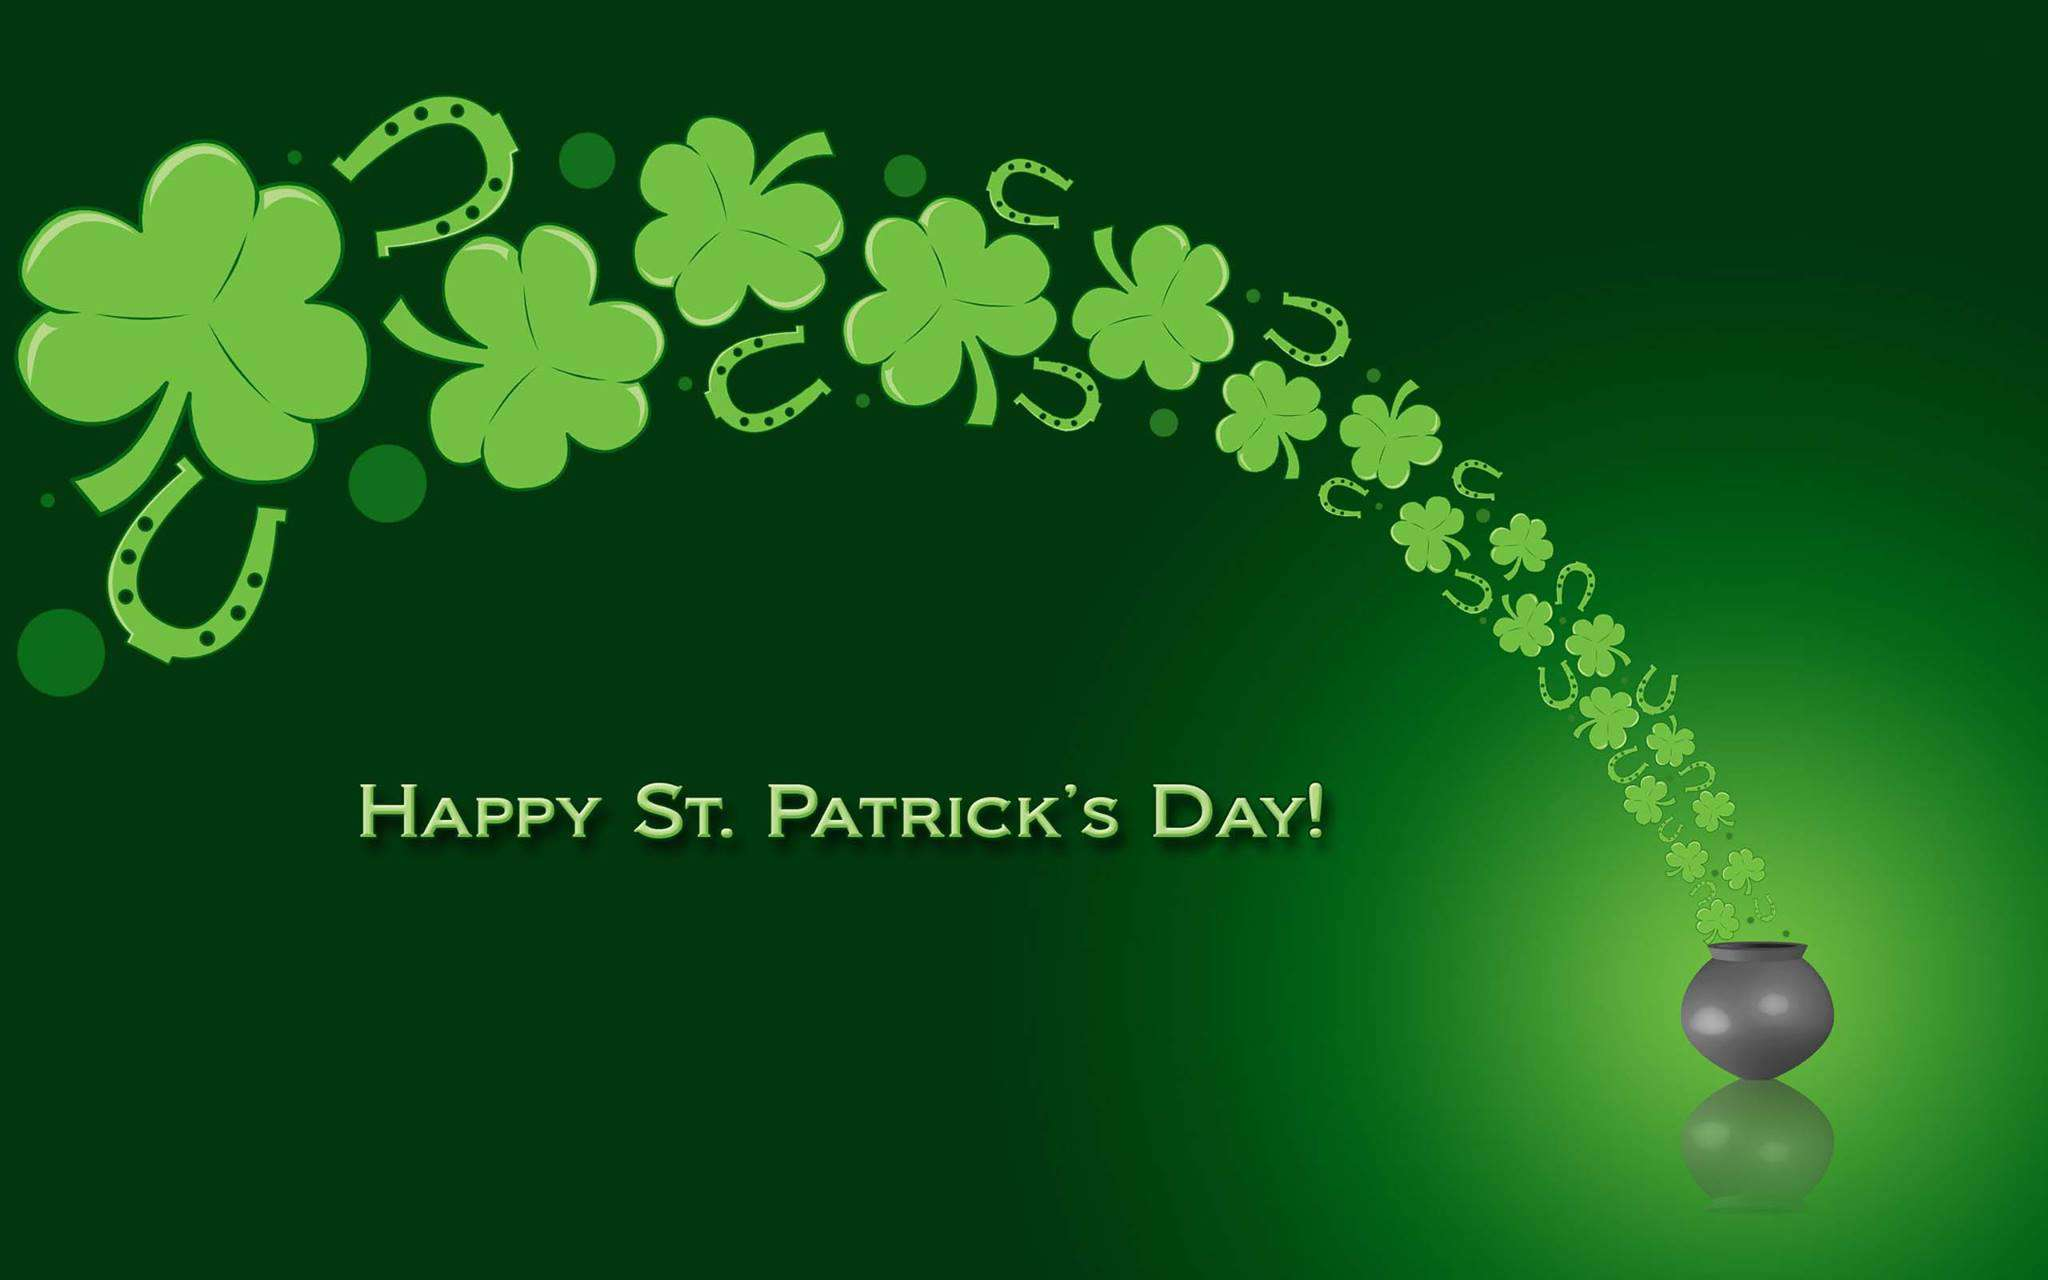 St. Patrick's Day Wishes for Whatsapp